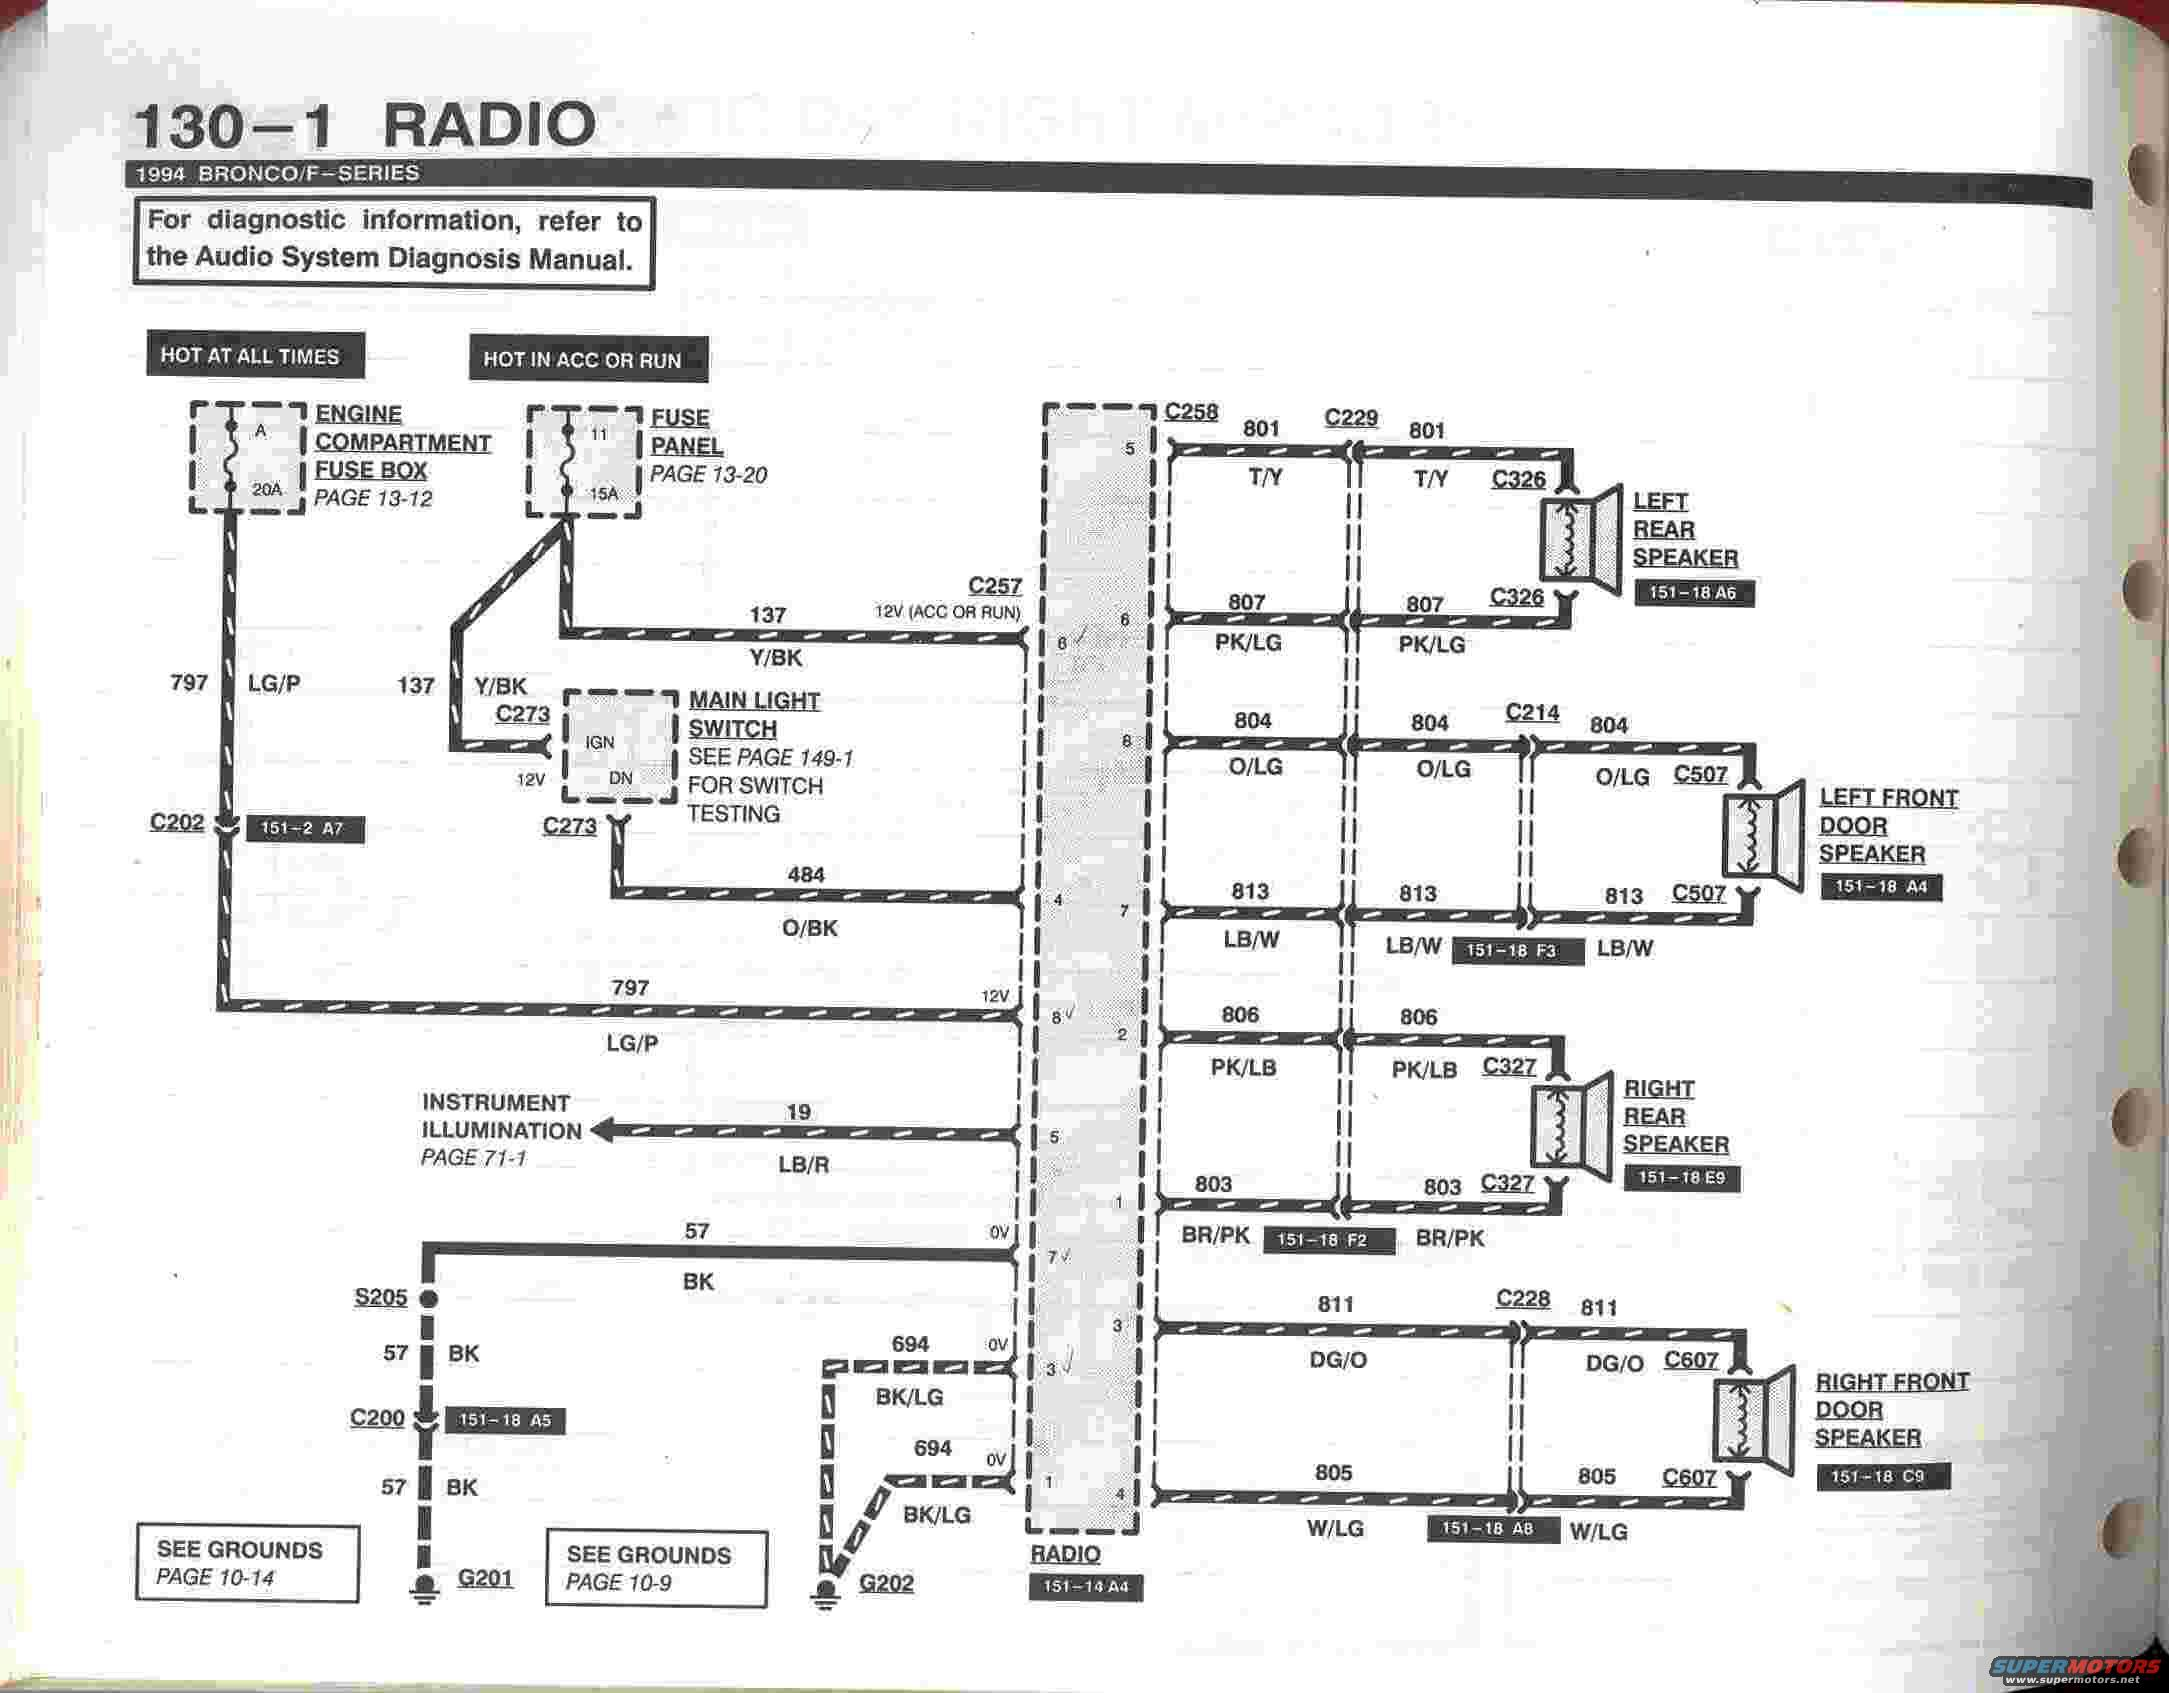 1993 radio wiring diagram ford bronco forum. Black Bedroom Furniture Sets. Home Design Ideas